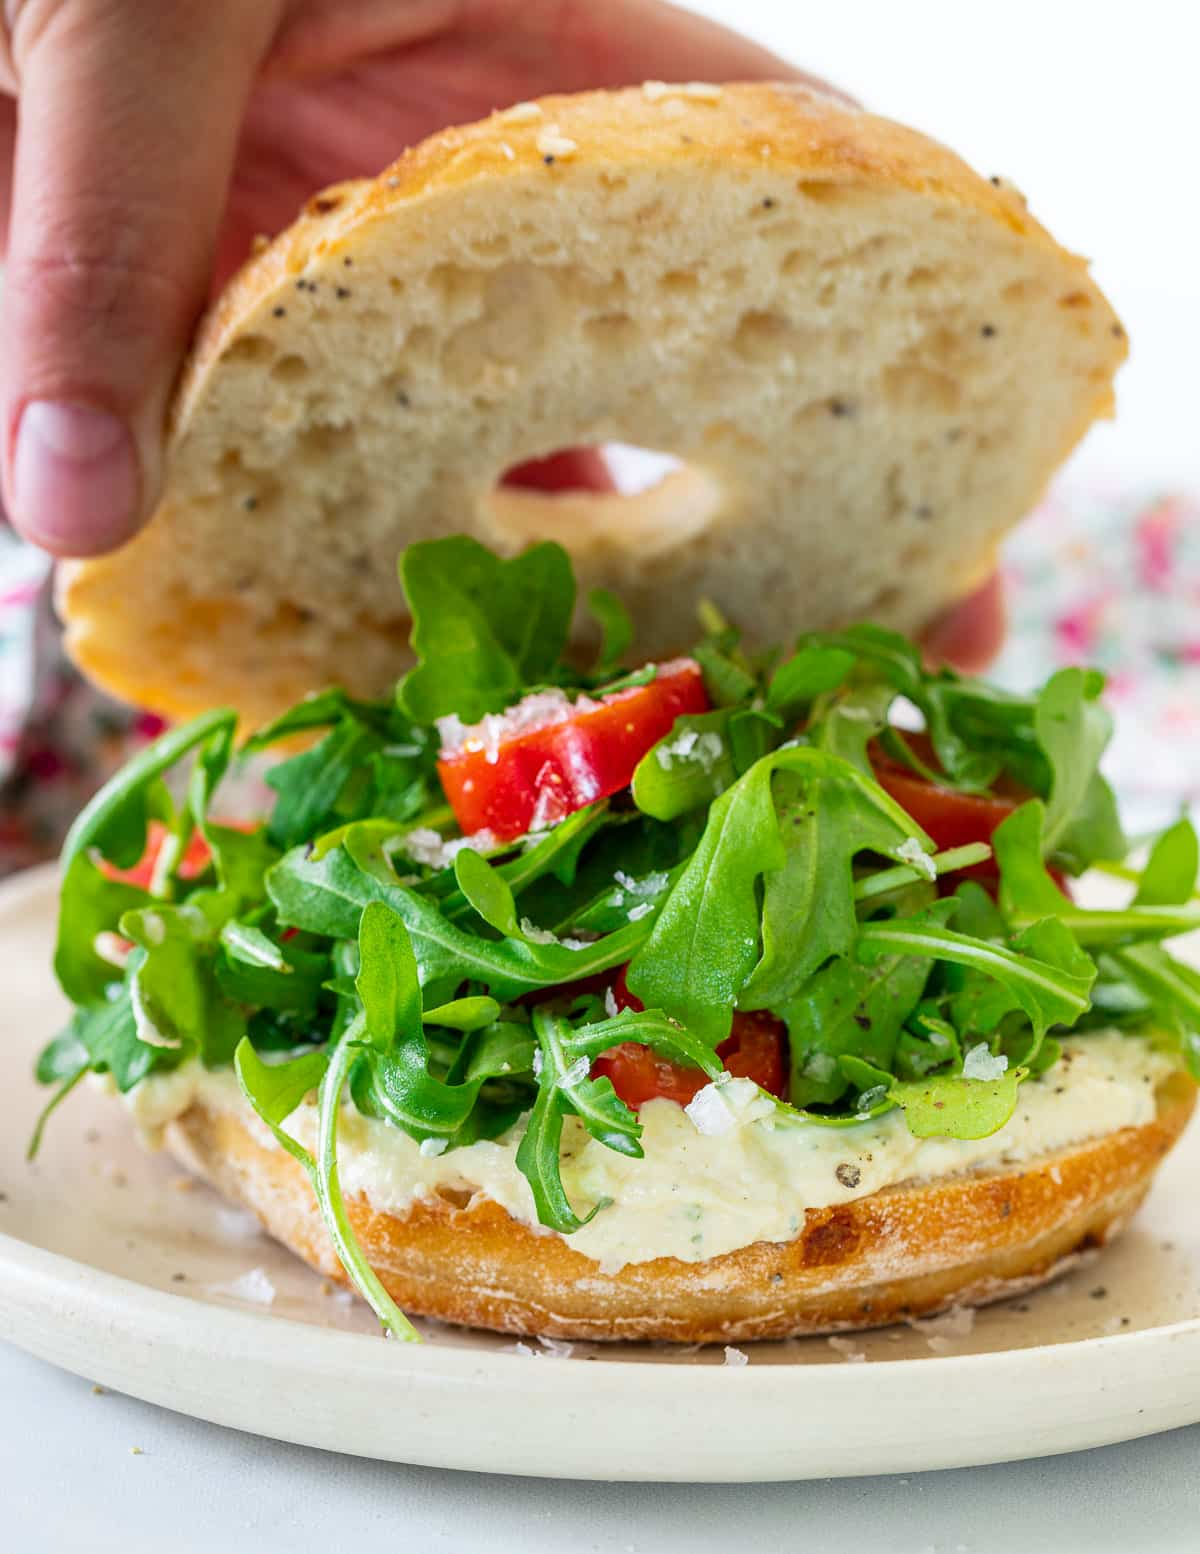 a bagel filled with vegan cream cheese, arugula and tomato